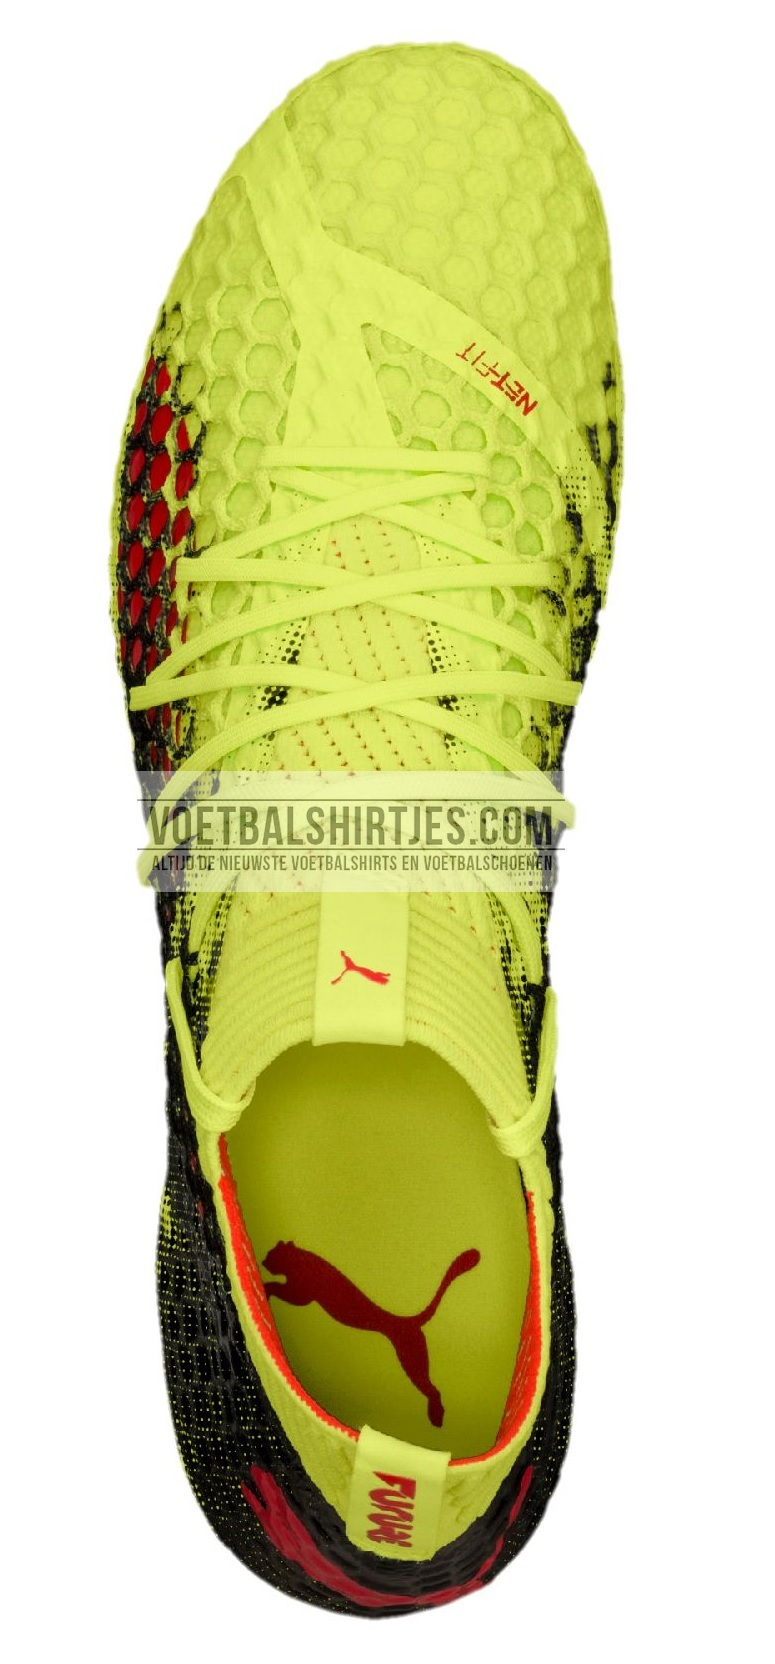 Puma Future fizzy yellow